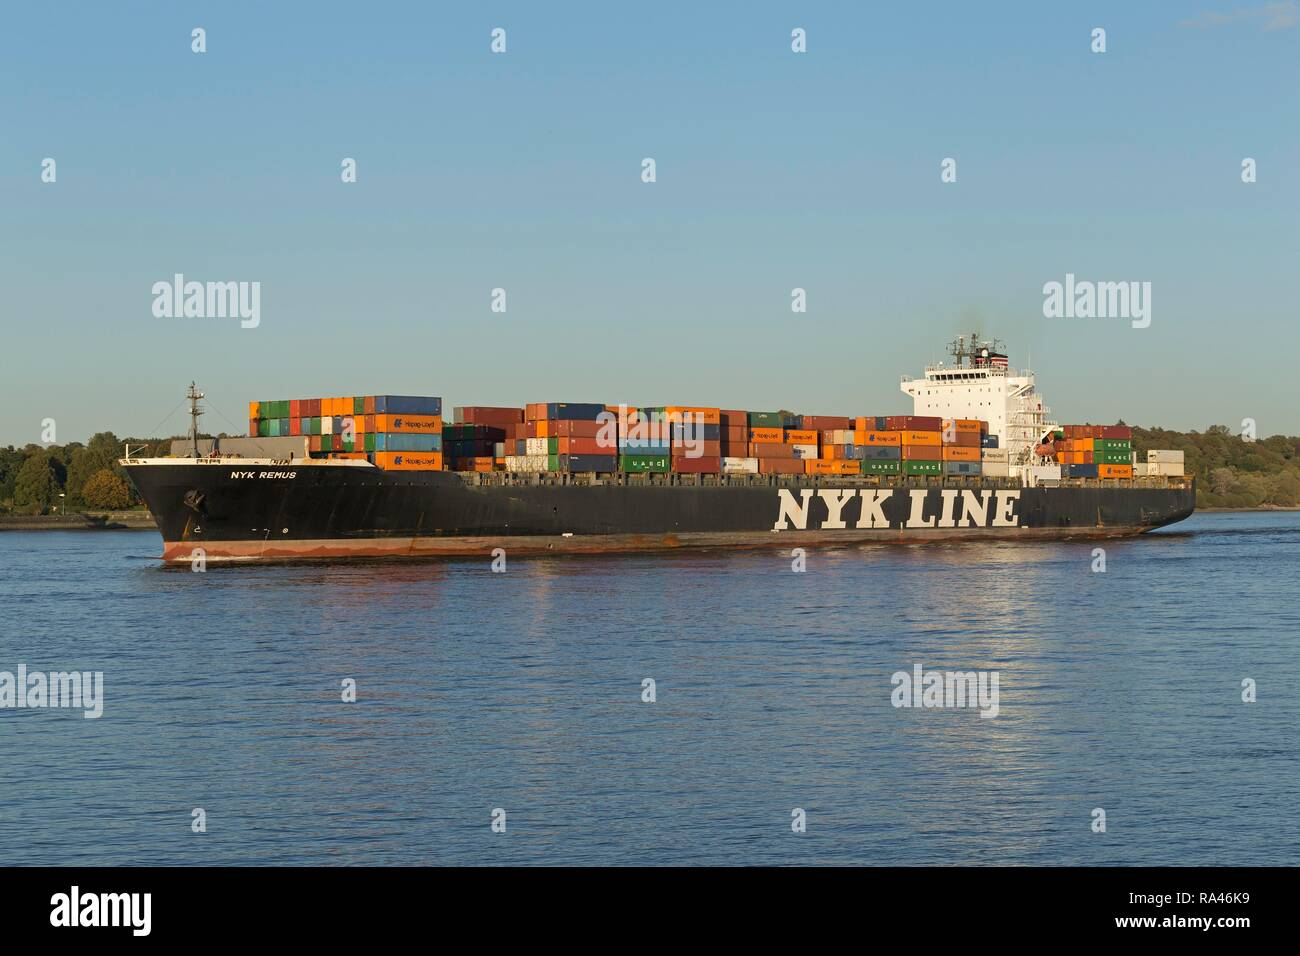 Container ship Nyk Line on Elbe river, Finkenwerder, Hamburg, Germany - Stock Image